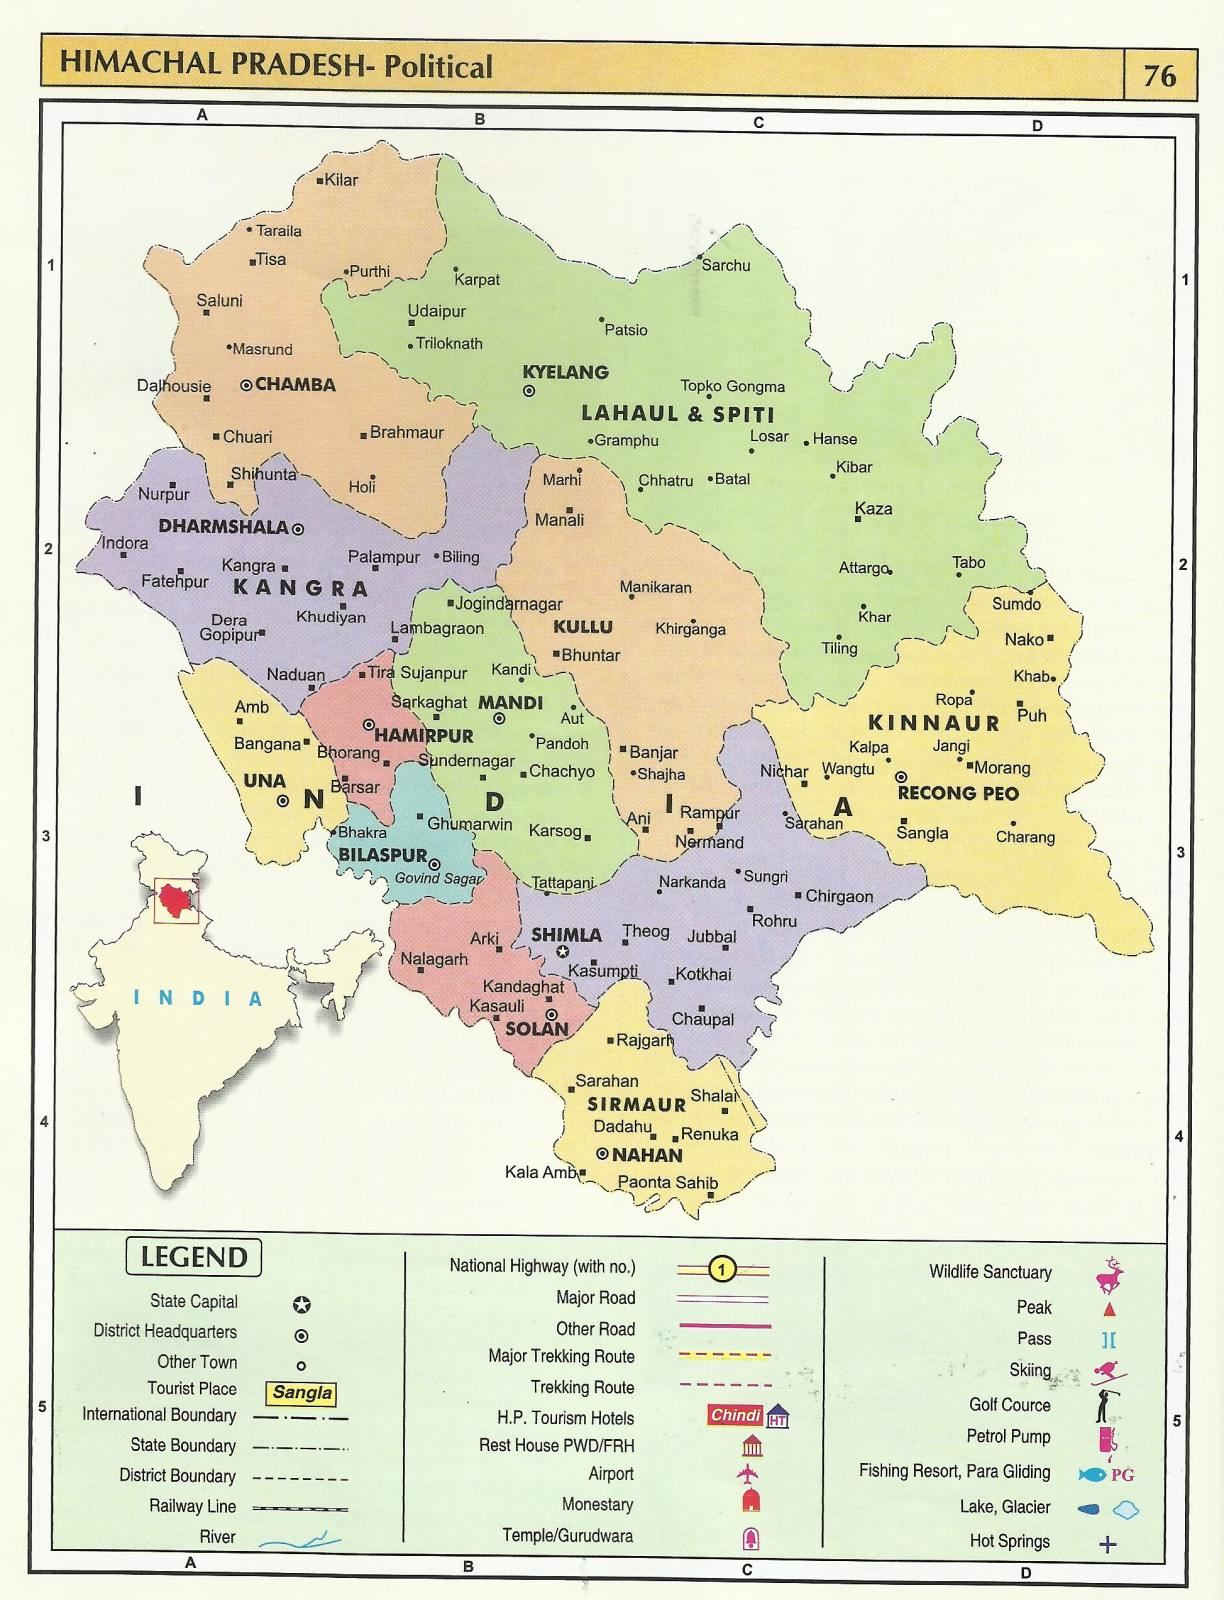 detailed himachal pradesh political map Himachal Pradesh Tourist Maps Himachal Pradesh Travel Guide detailed himachal pradesh political map